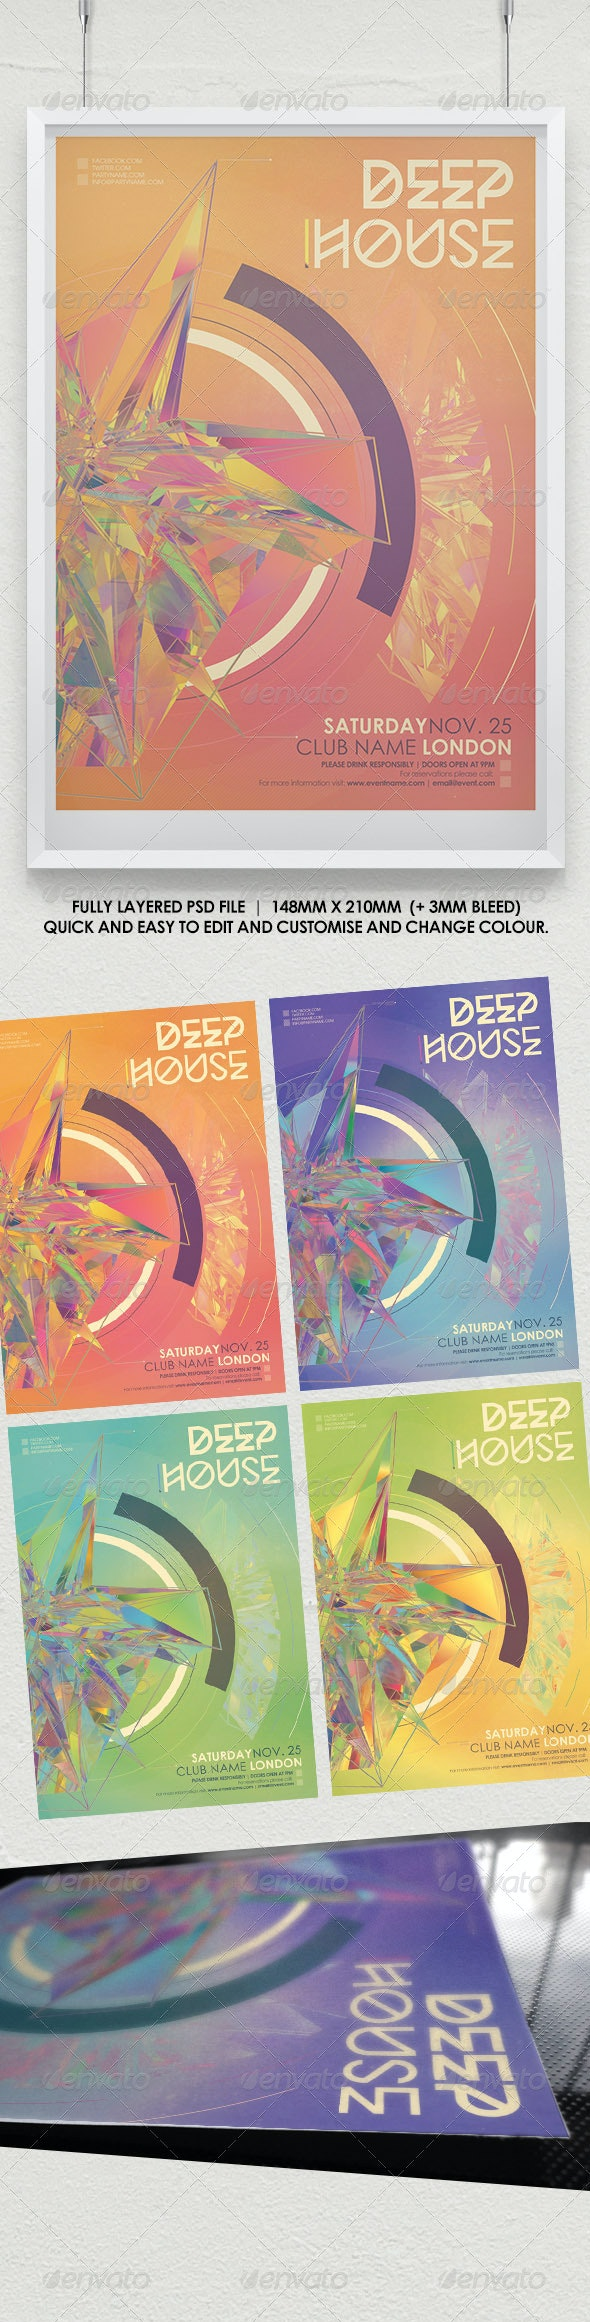 Deep House Abstract Flyer Vol 1 - Clubs & Parties Events